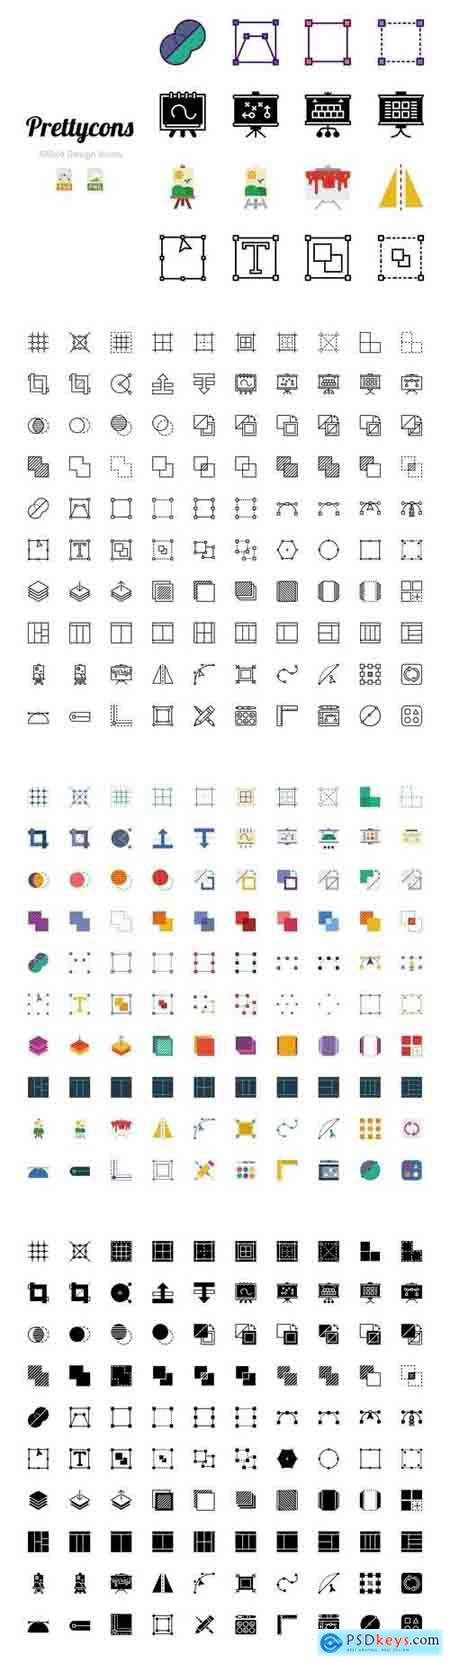 Prettycons - 400 Design Icons Vol.1